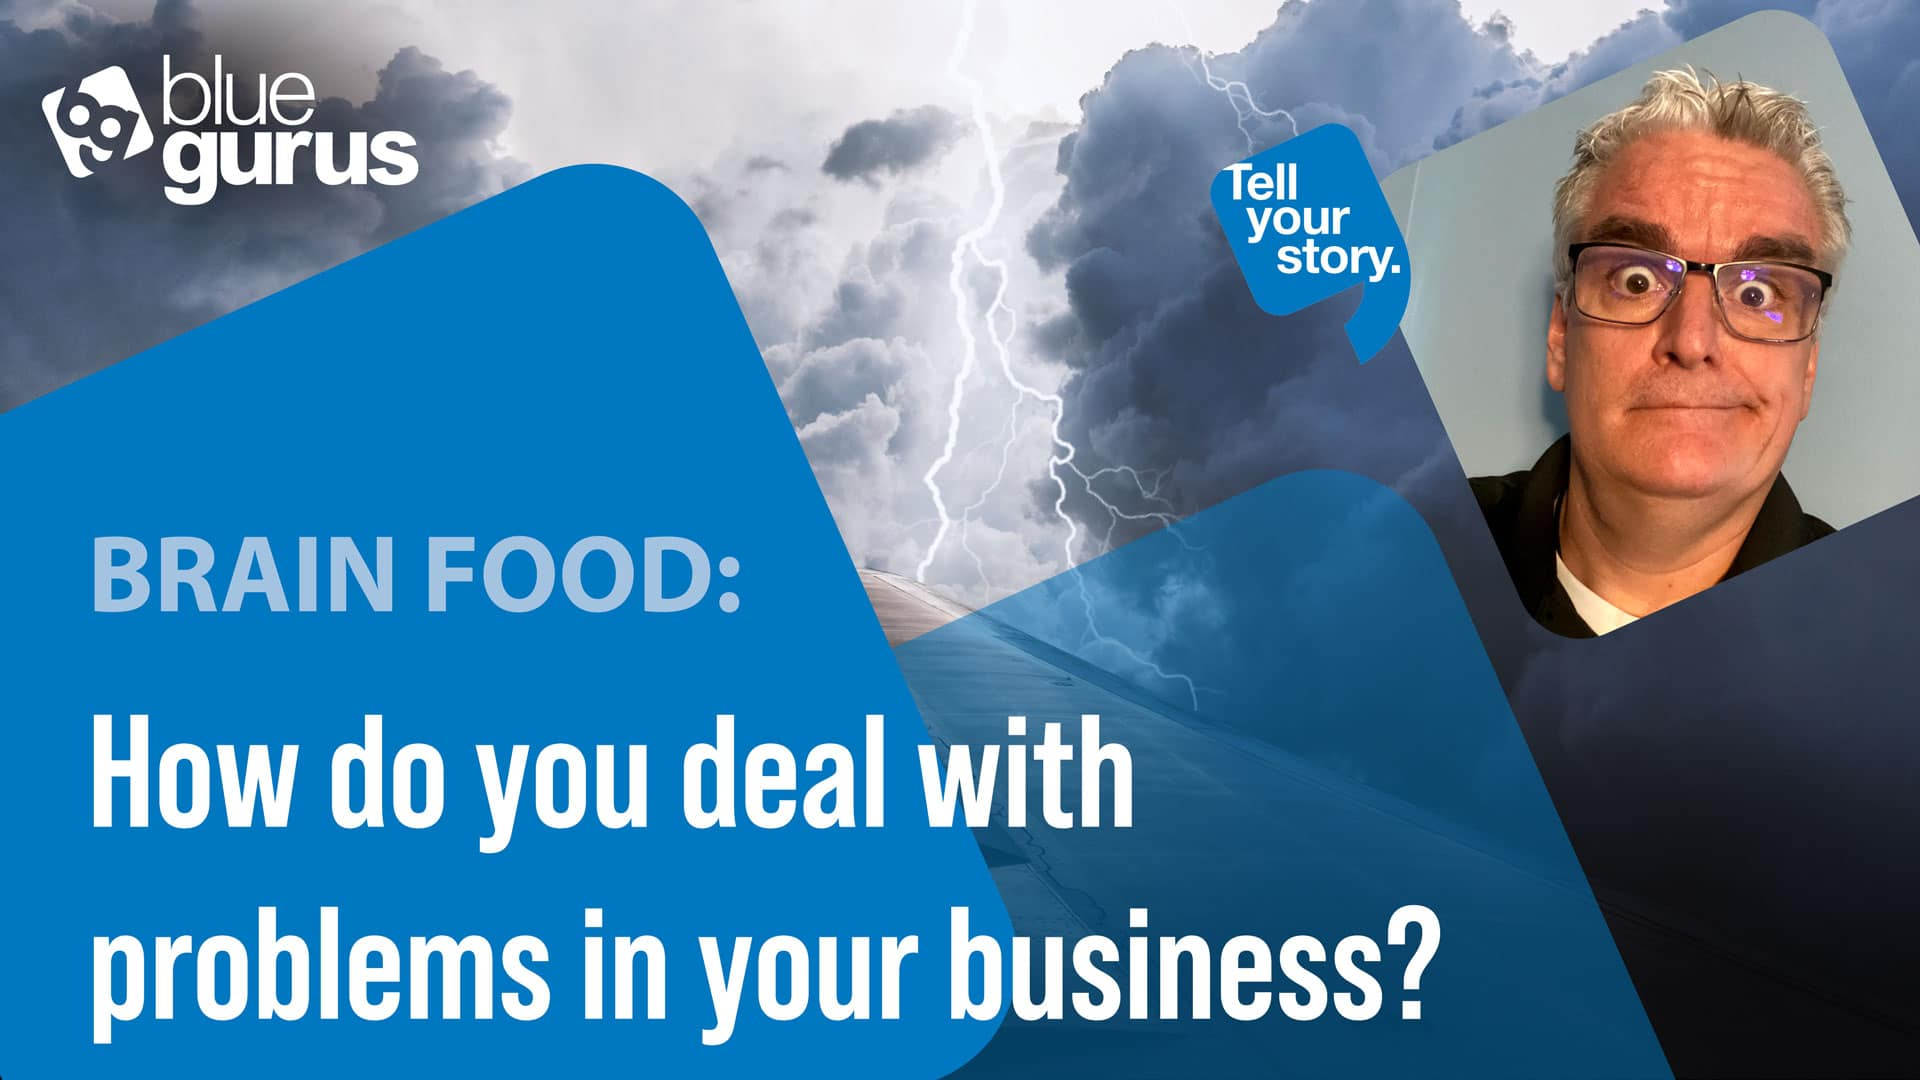 Brain Food: How do you deal with problems in your business?